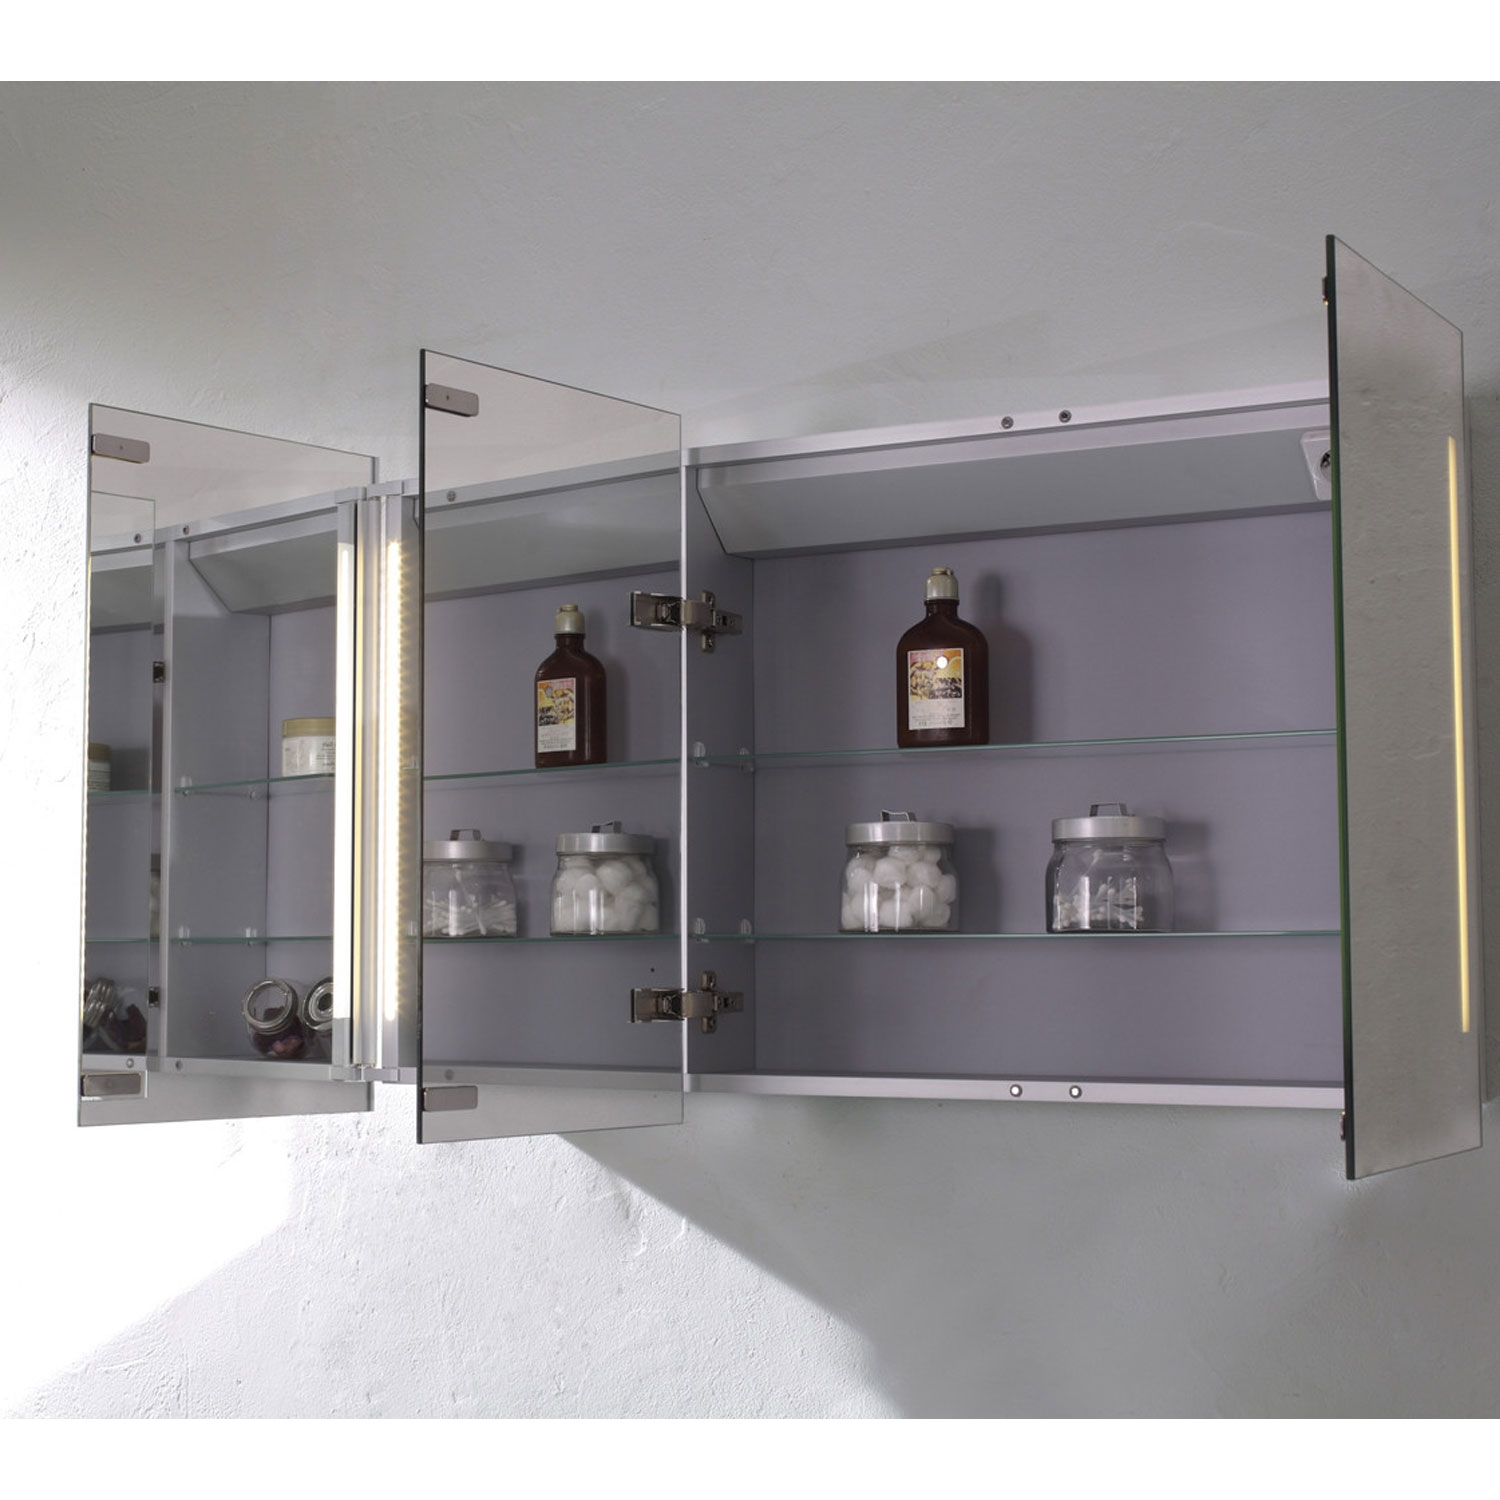 Verona Valletta 3-Door Mirrored Bathroom Cabinet 1000mm Wide with LED Light and Shaver Socket